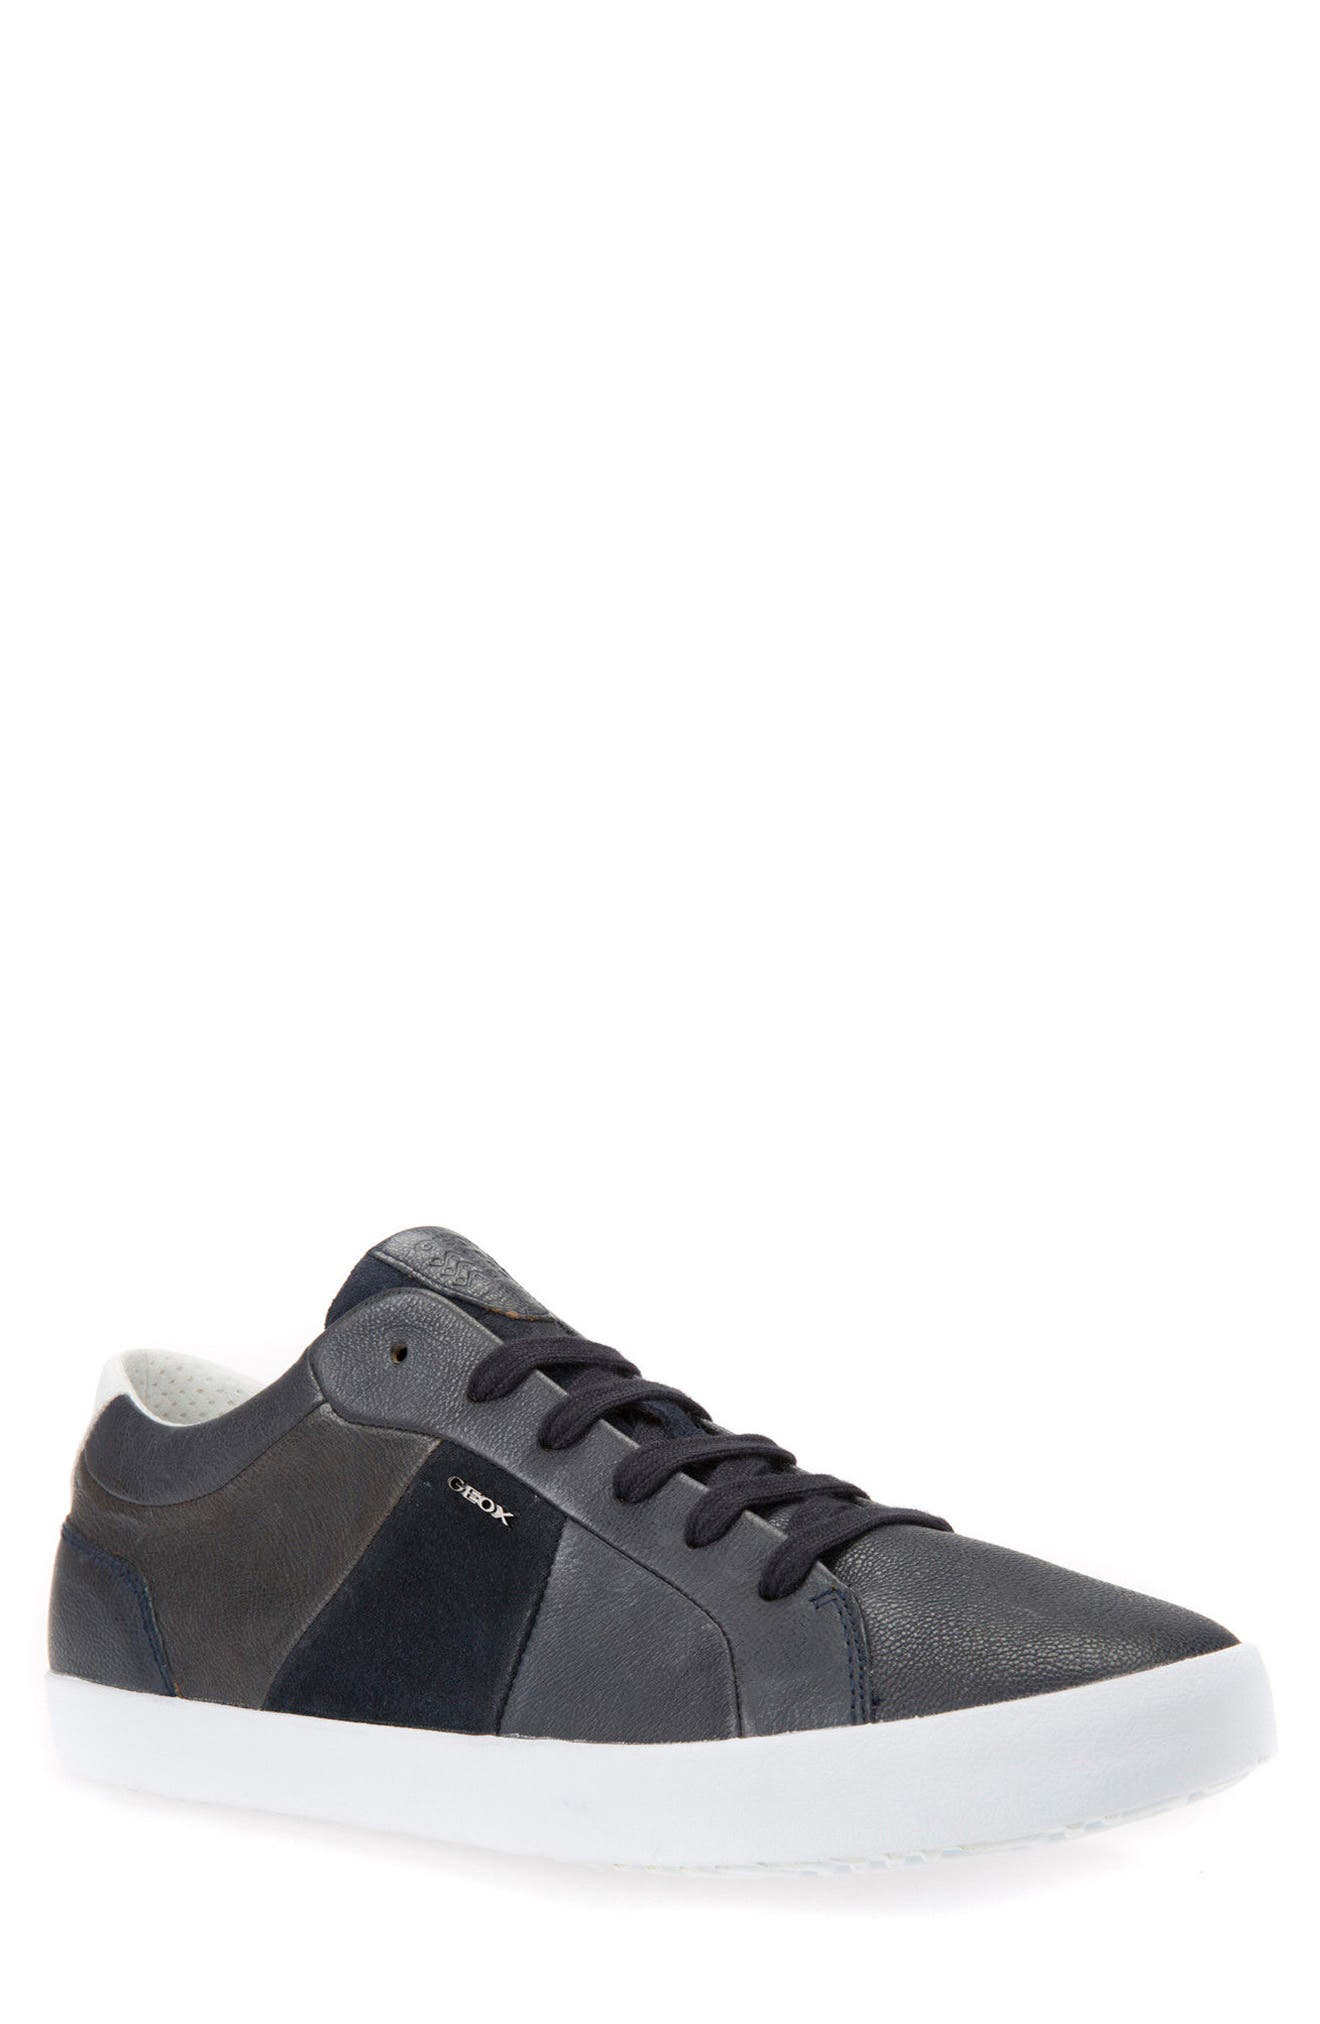 Smart 77 Sneaker,                         Main,                         color, Navy Leather